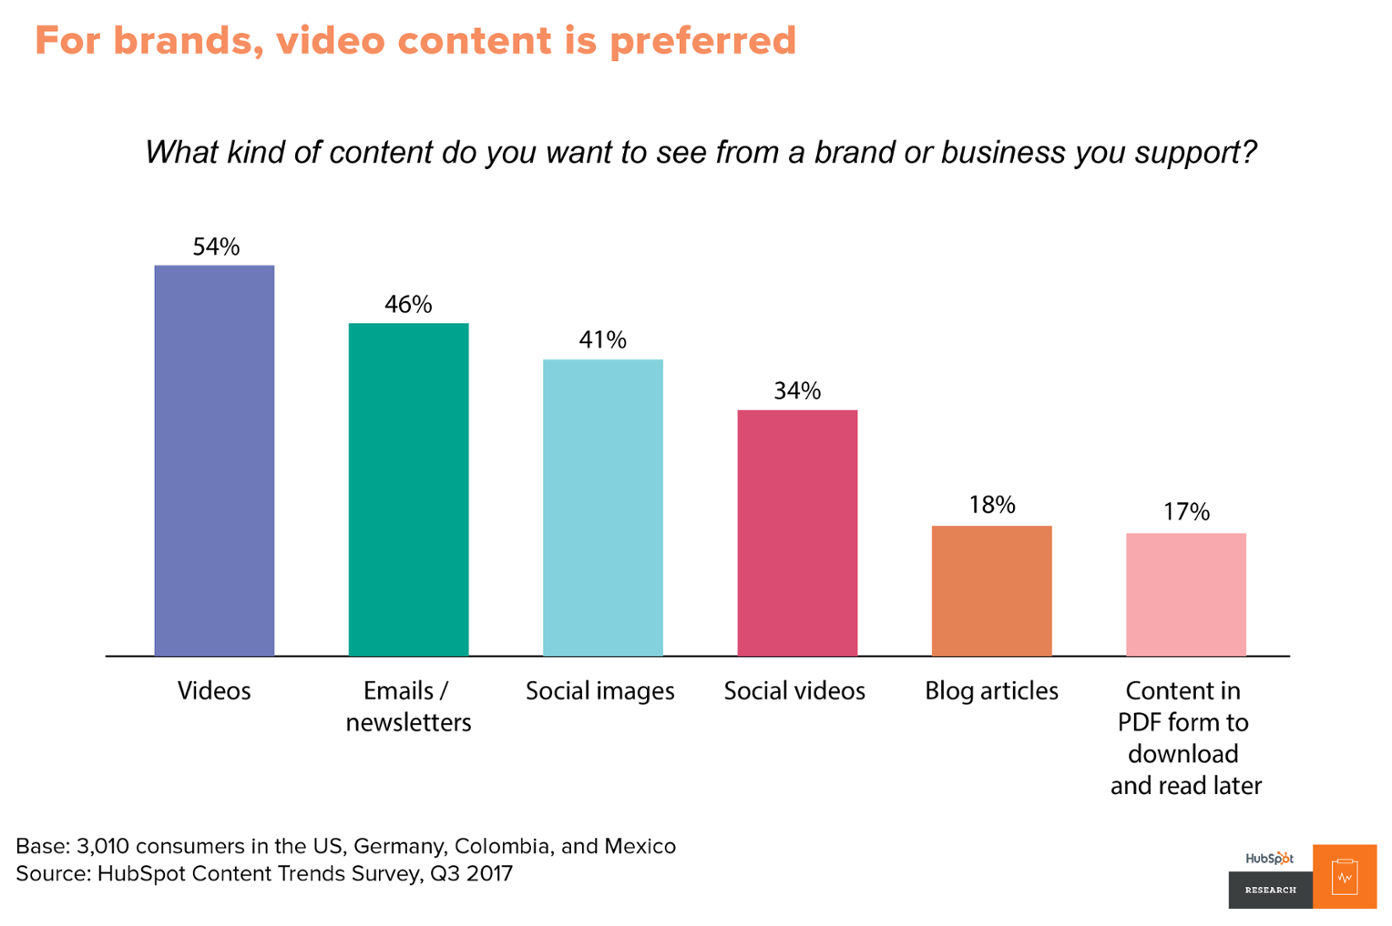 Financial advisor clients prefer videos over any other type of content.